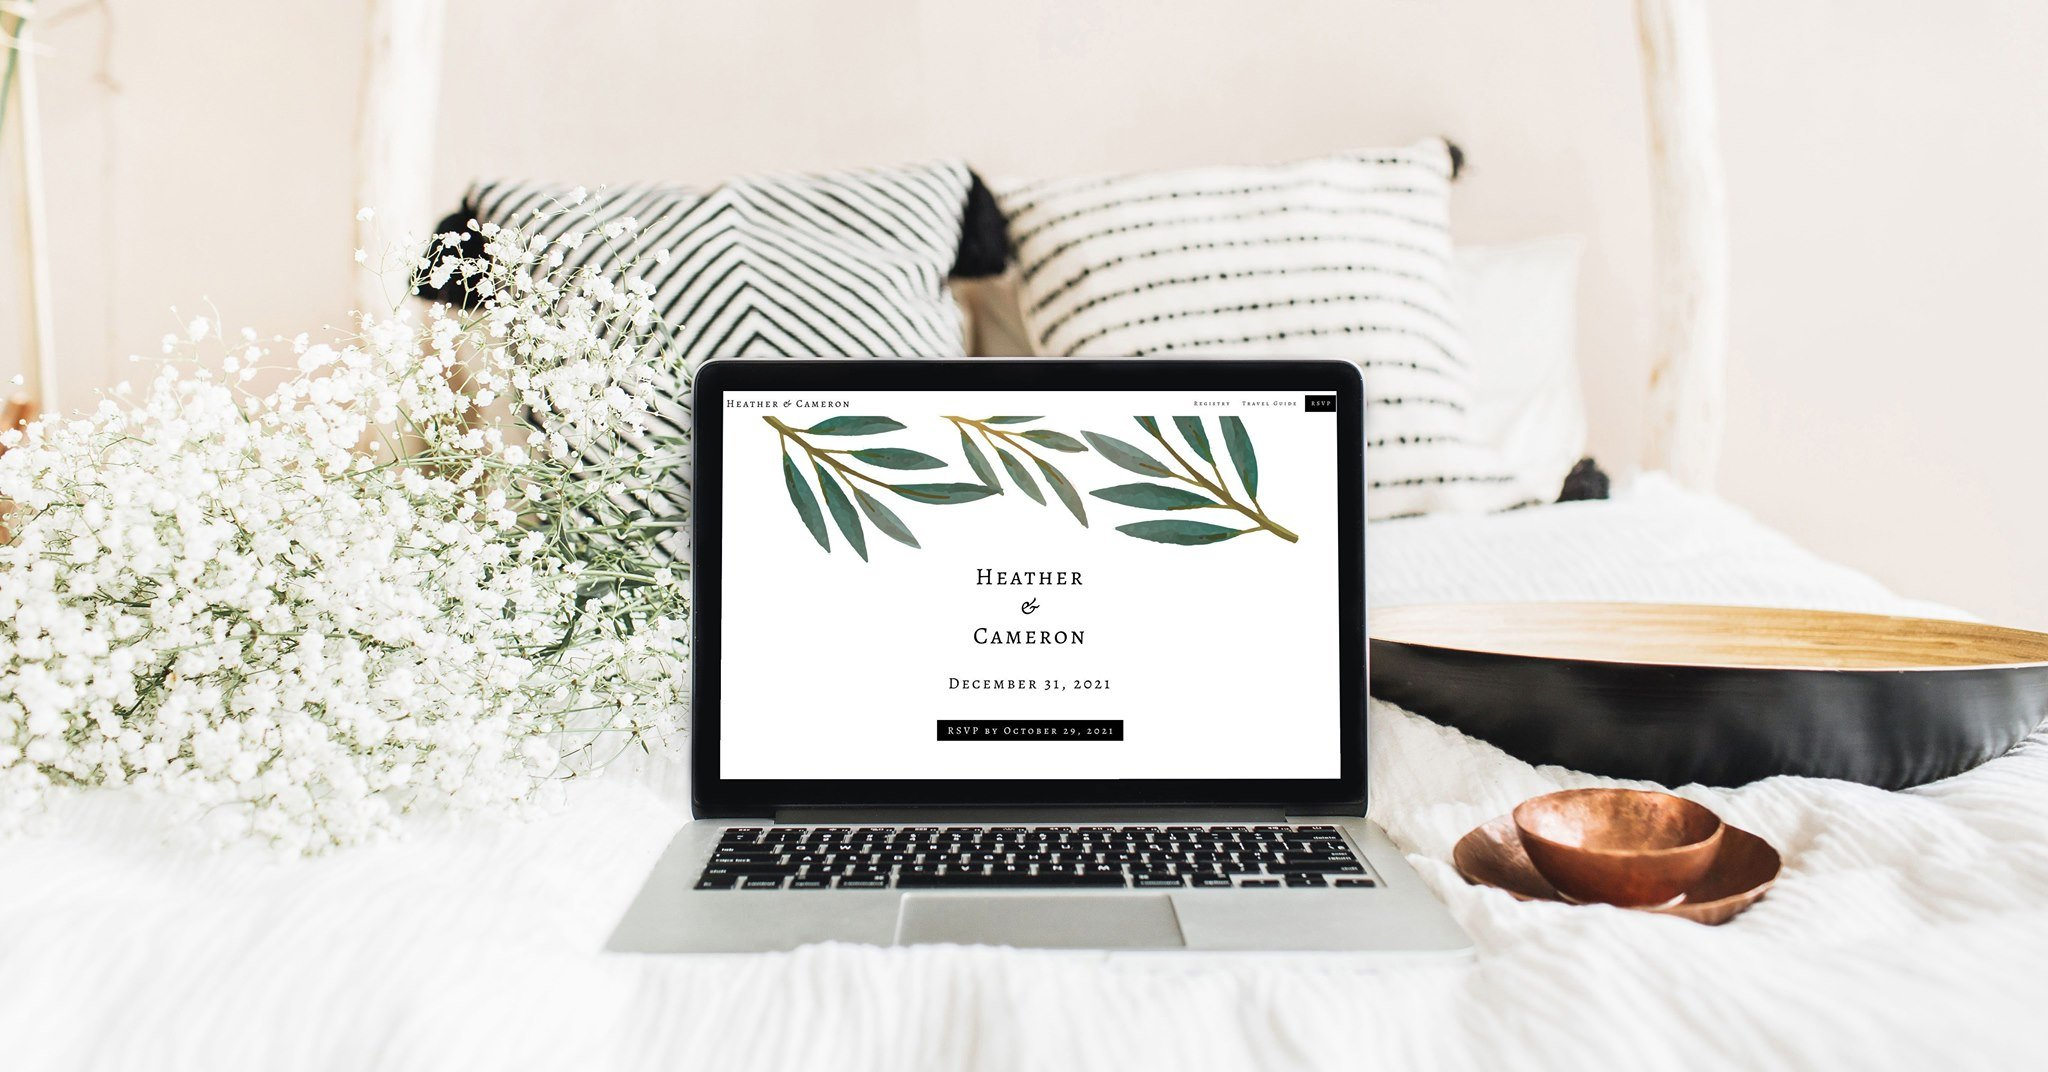 Wedding website builder, online invitations, brainy budget calculator,master planning checklist and sanity-saving, online RSVPs. Eco-friendly paperless wedding website and invites.